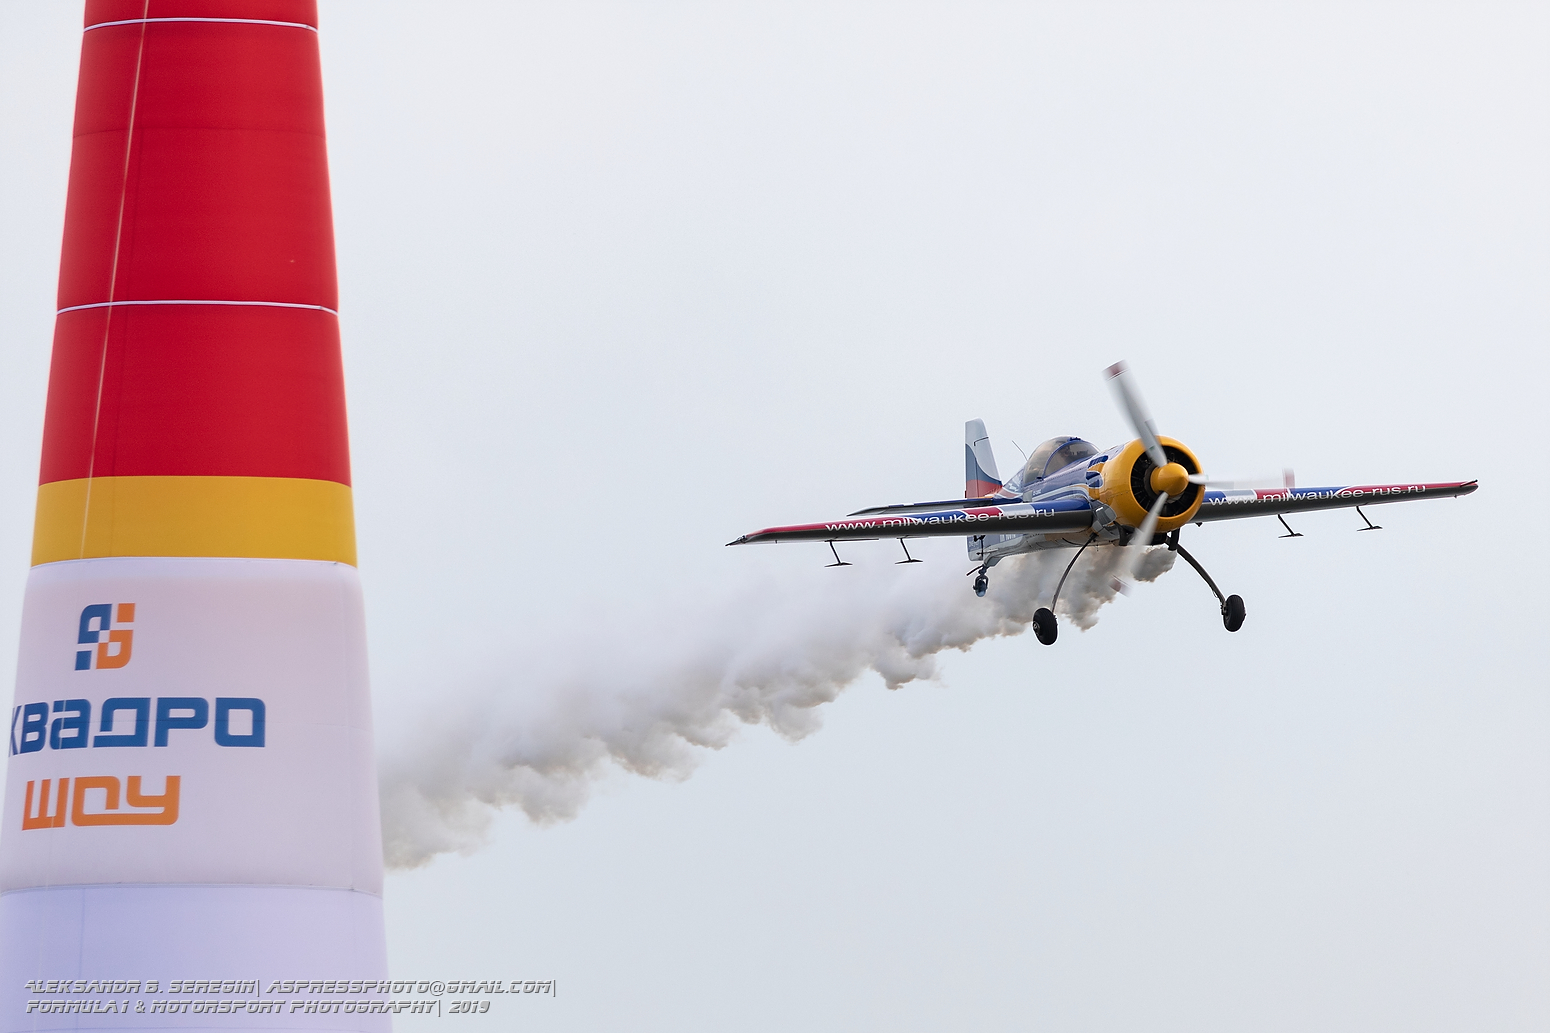 191.2019.Drakino.MO.Russian.Air.Race.June.ASppaImages.COM